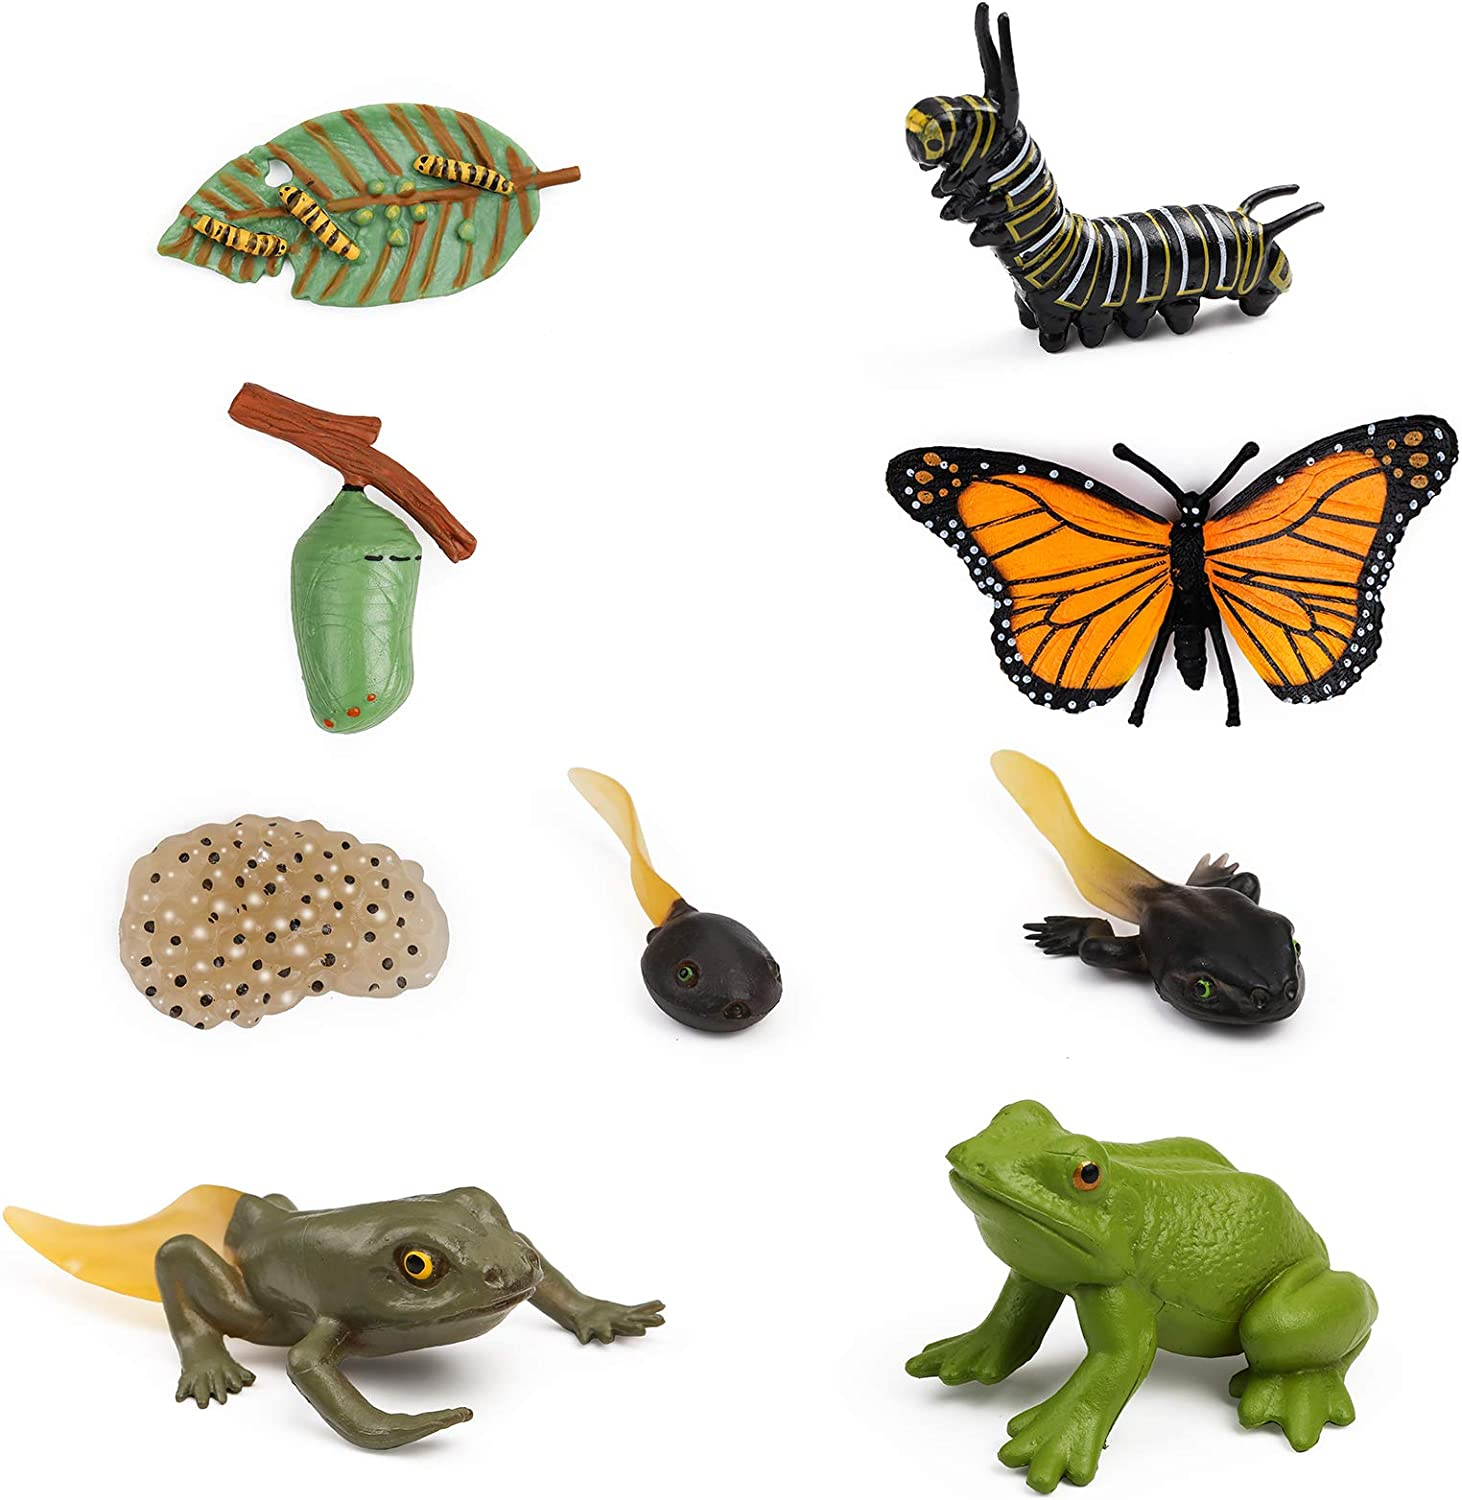 UANDME Life Cycle Figurines of a Monarch Butterfly and a Frog Realistic Education Insects Life Stages Figures for Learning and Teaching Aids